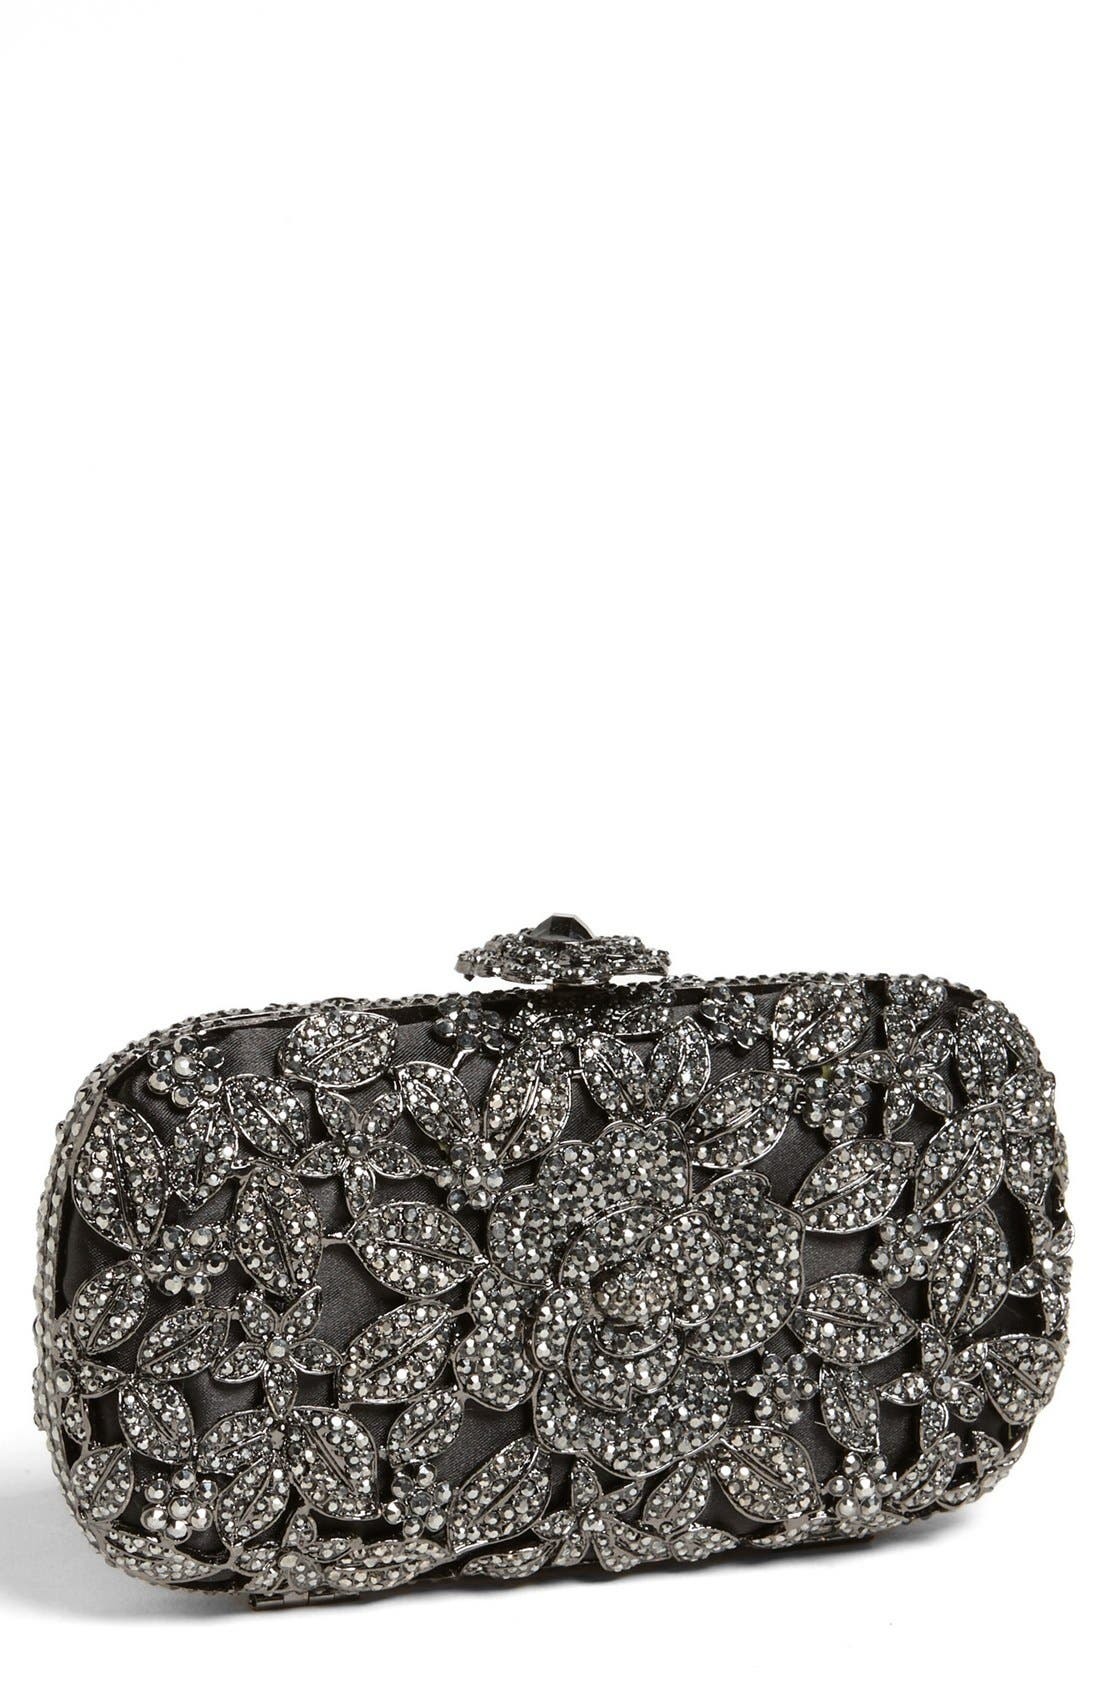 Natasha Couture Crystal Caged Floral Clutch,                         Main,                         color, 001